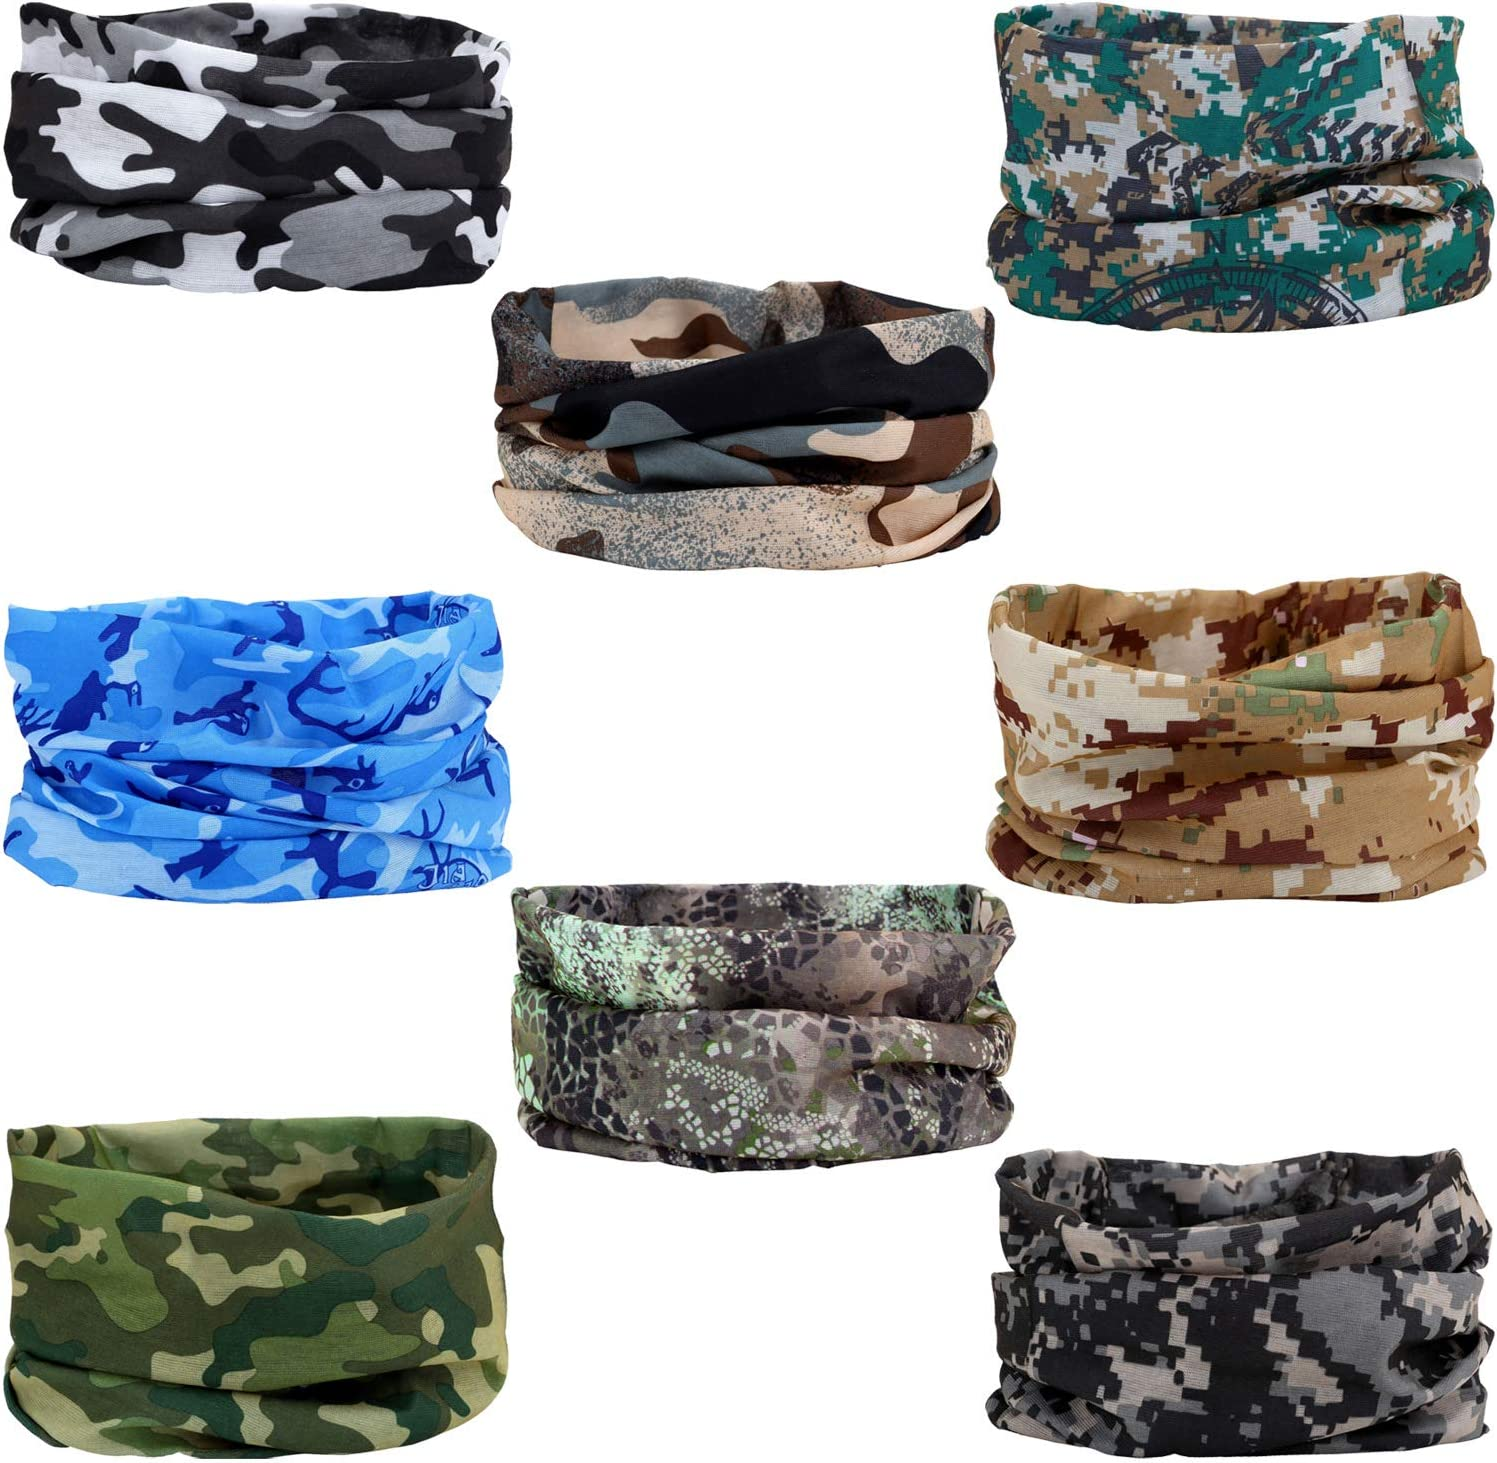 SMEHCF 8 Novelty Seamless Bandana Balaclava Face Cover Mask Shield Neck Gaiter Reusable Breathable Dustproof Windproof Unisex Digtal Camo Camouflage Autumn Winter Forest Jungle